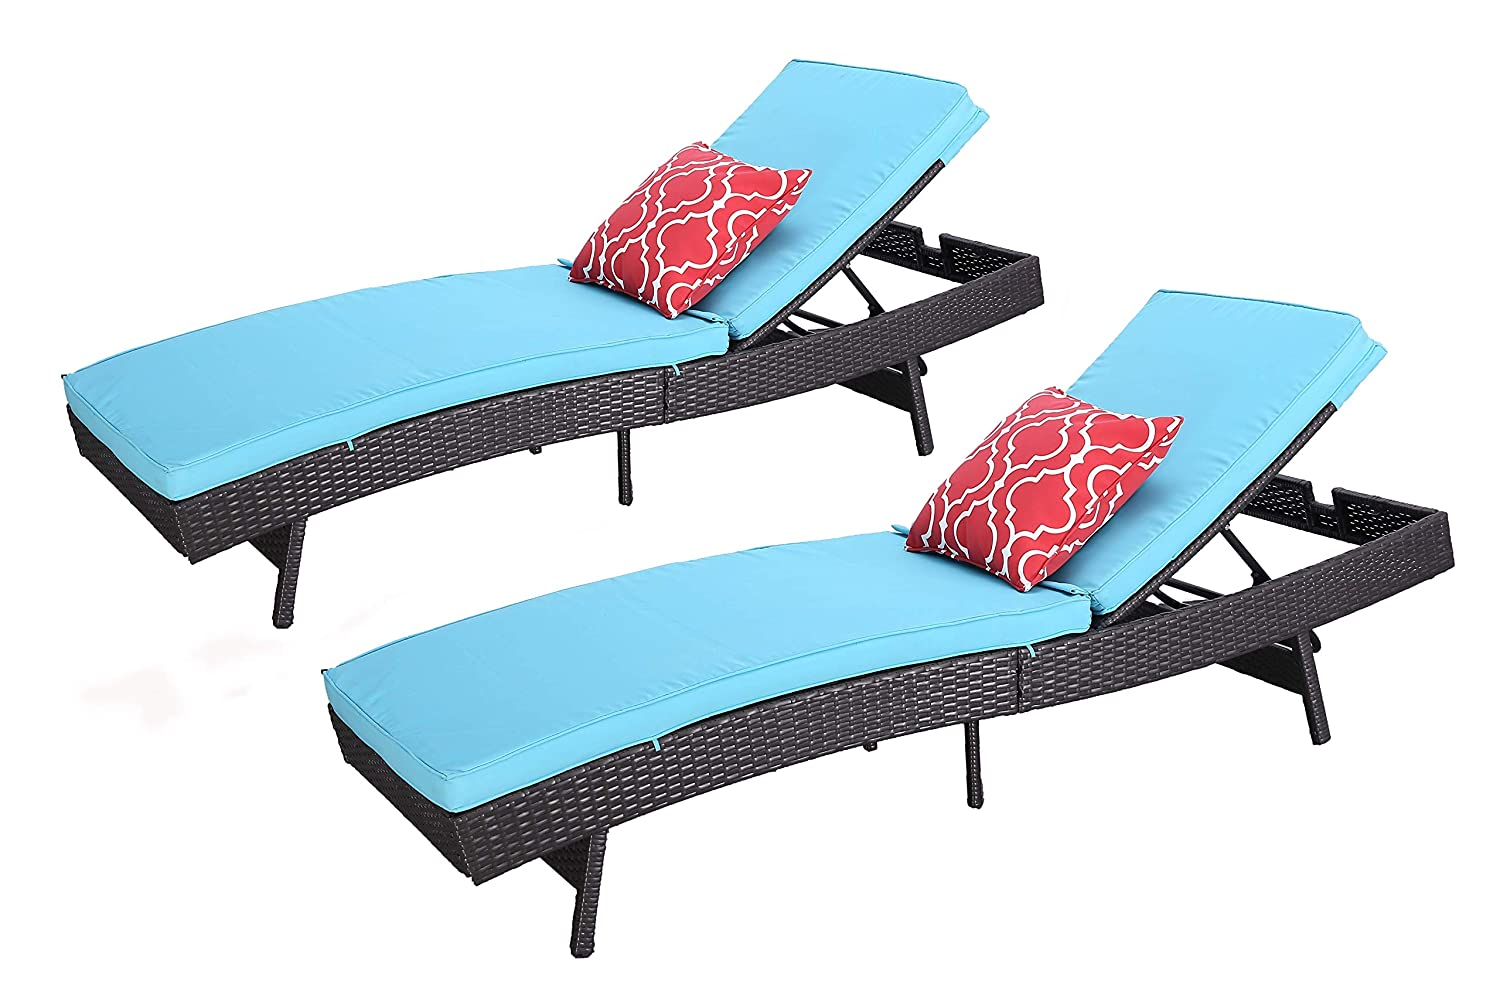 2 Comfy Wicker Assemble Chaise But Outdoor LoungeEasy Pices Cushion Htth Lounge Durable LongueThickamp; ChairsLightweight To XTOkZuwPi